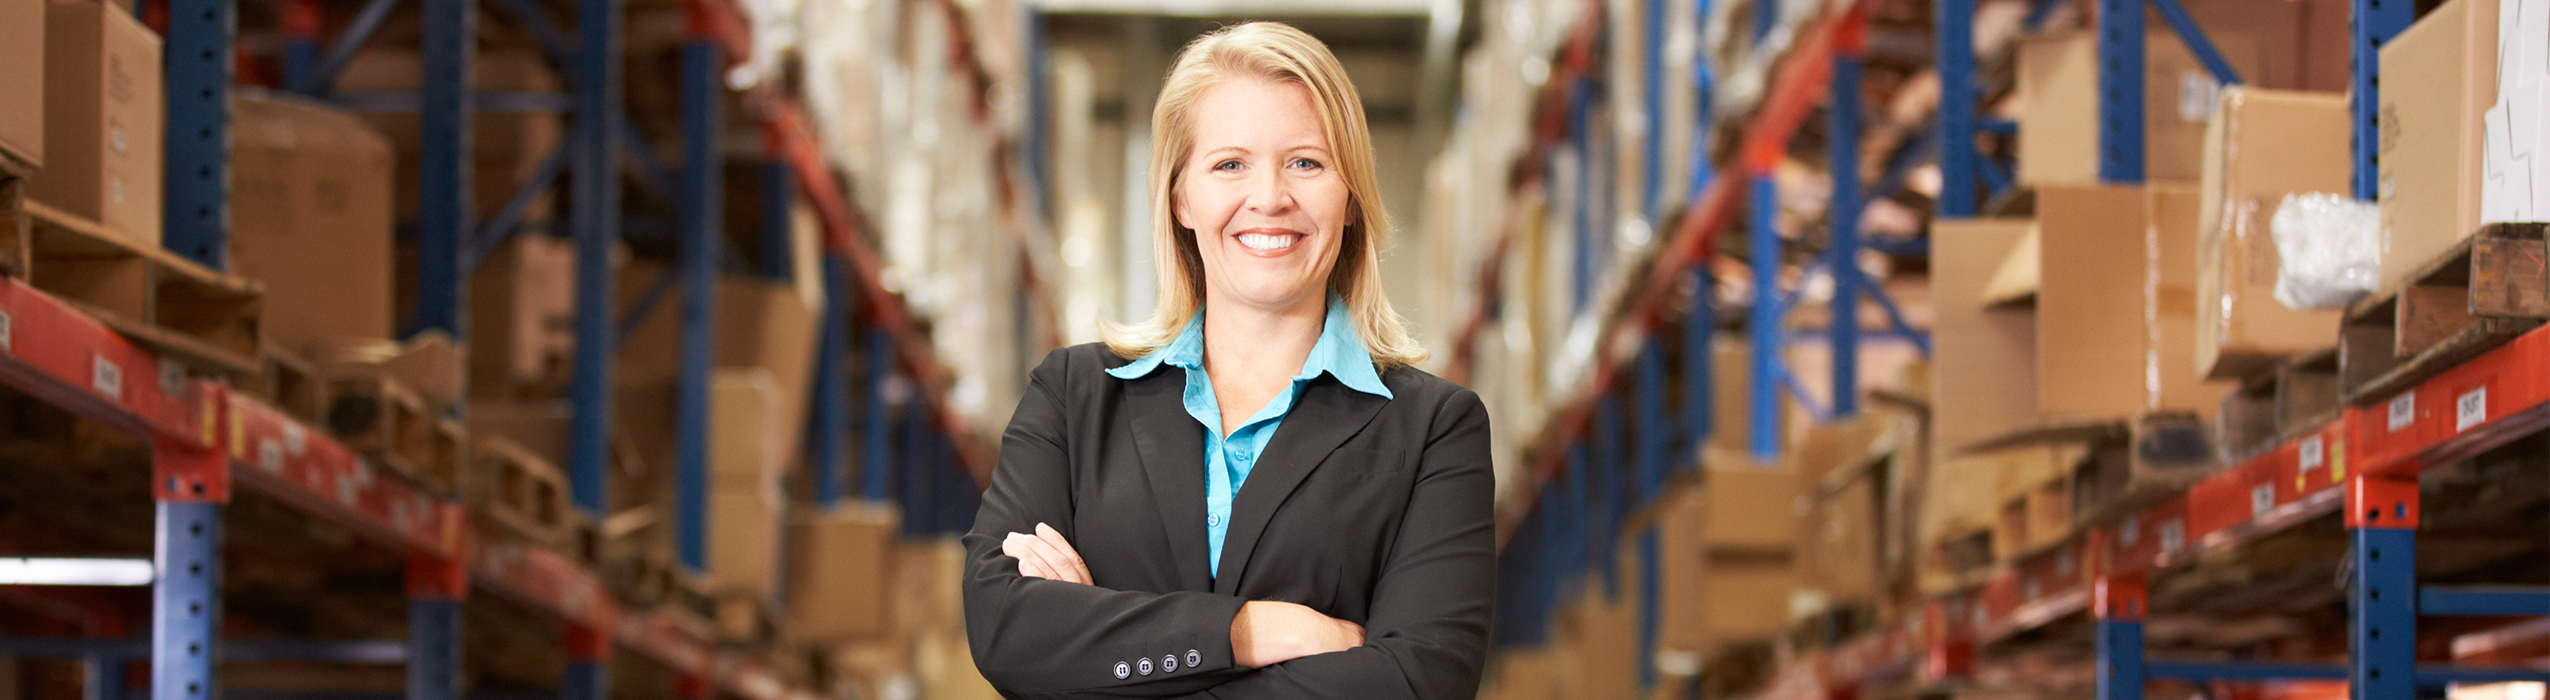 ecommerce owner smiling in her warehouse